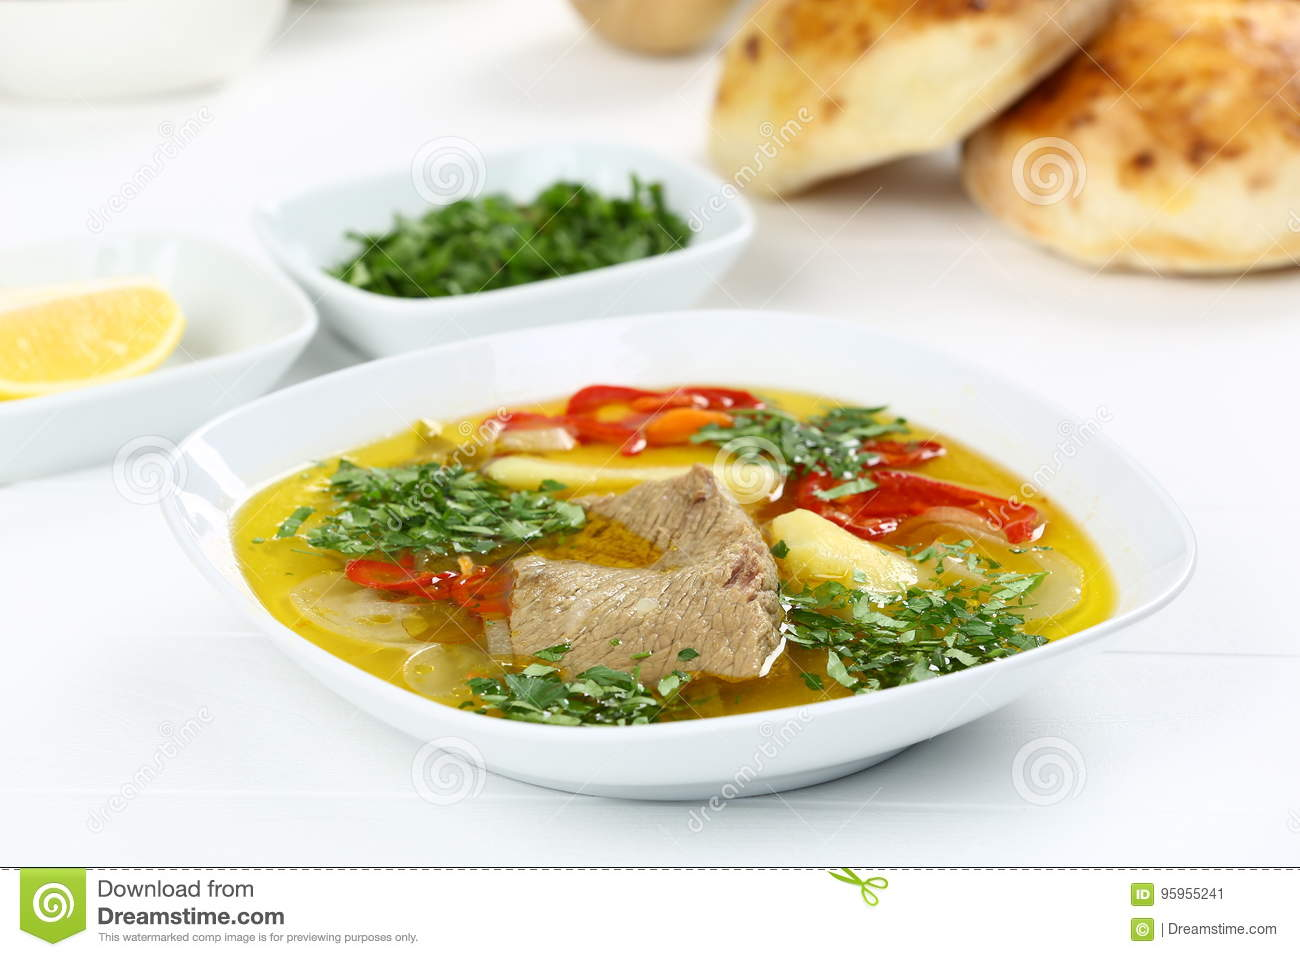 Turkish Bony Lamb Soup With Carrot Stock Image Image Of Clay Food